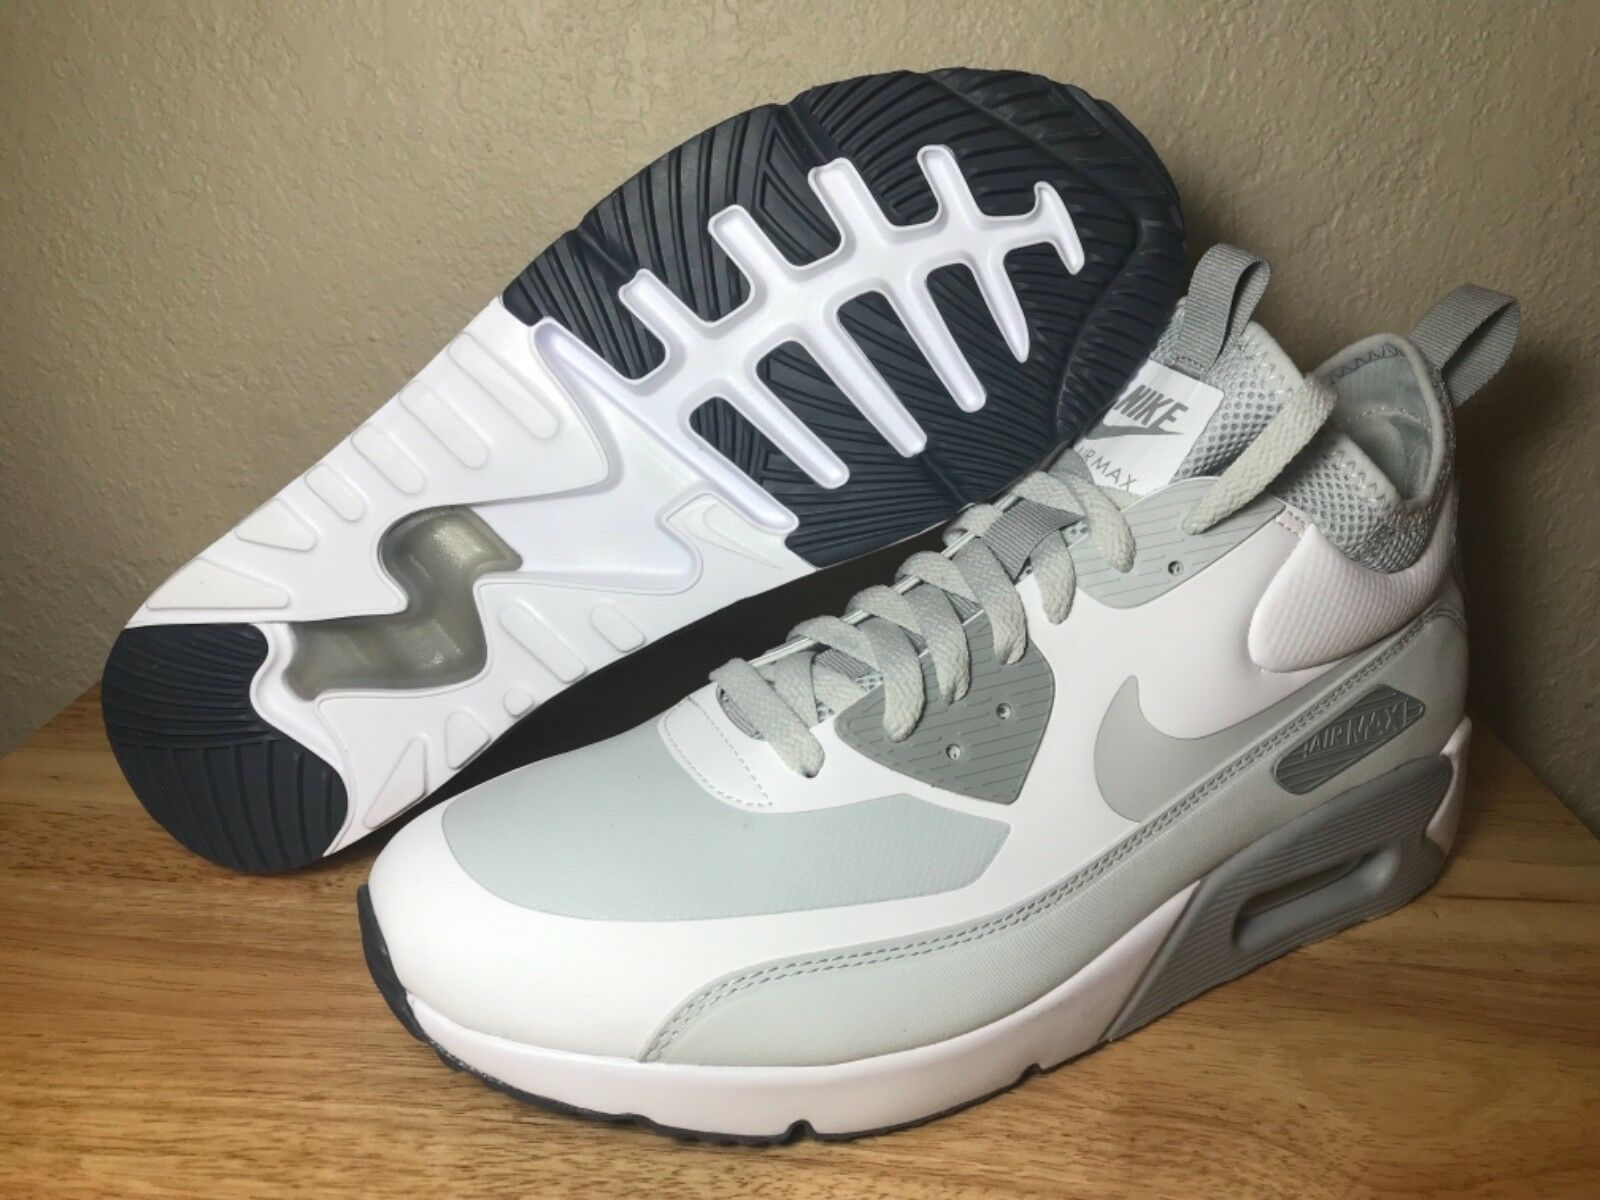 Nike Air Max 90 Ultra Mid Trainers SZ 10.5 White Pure Platinum New (924458-100)